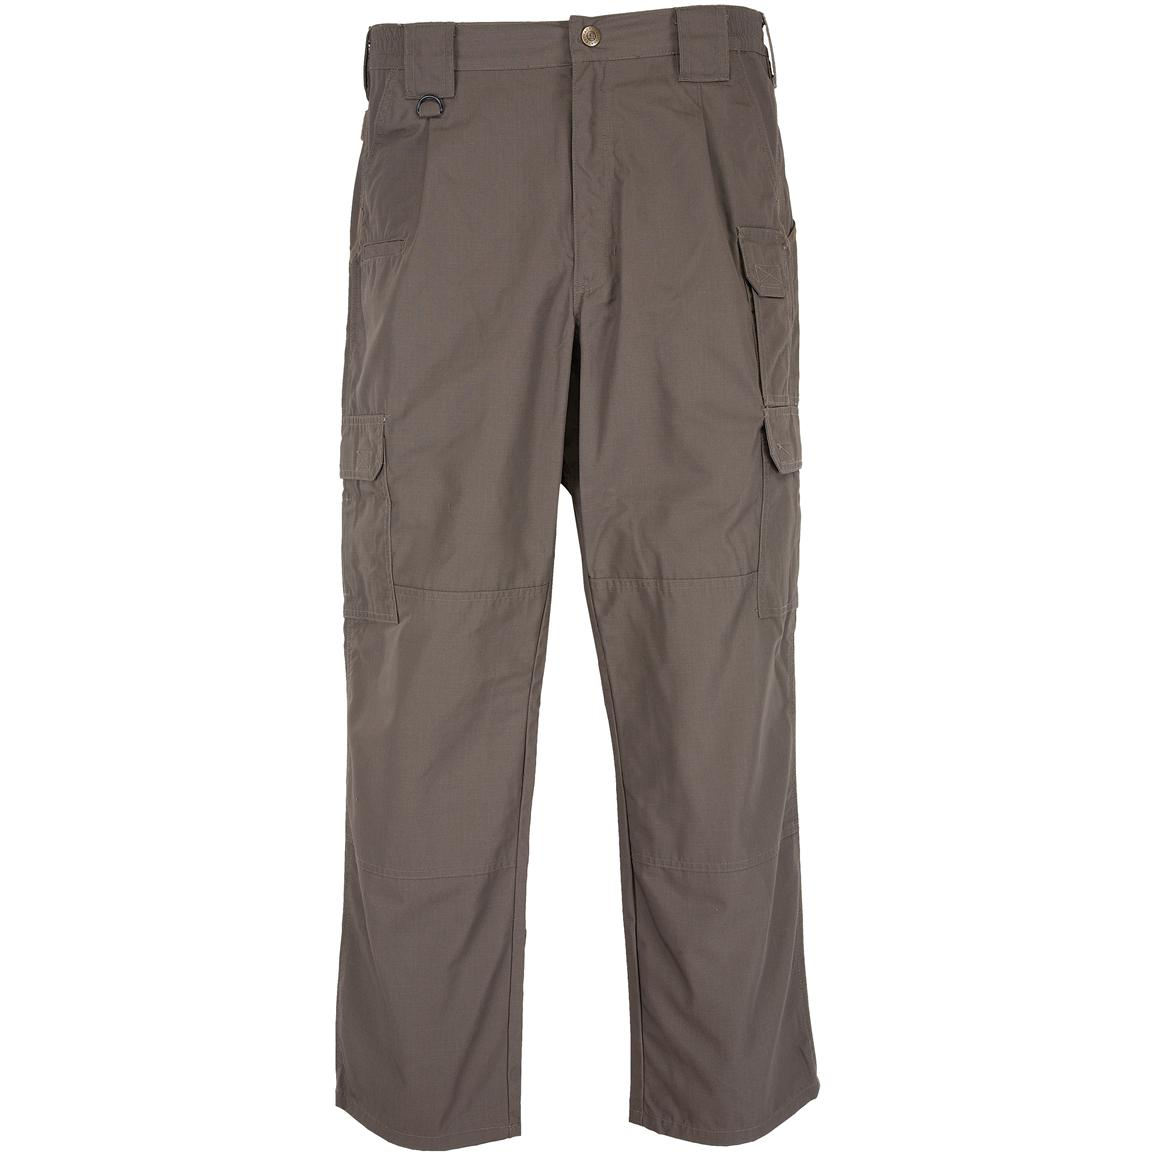 Men's 5.11 Tactical® Taclite Pro Pants, Tundra